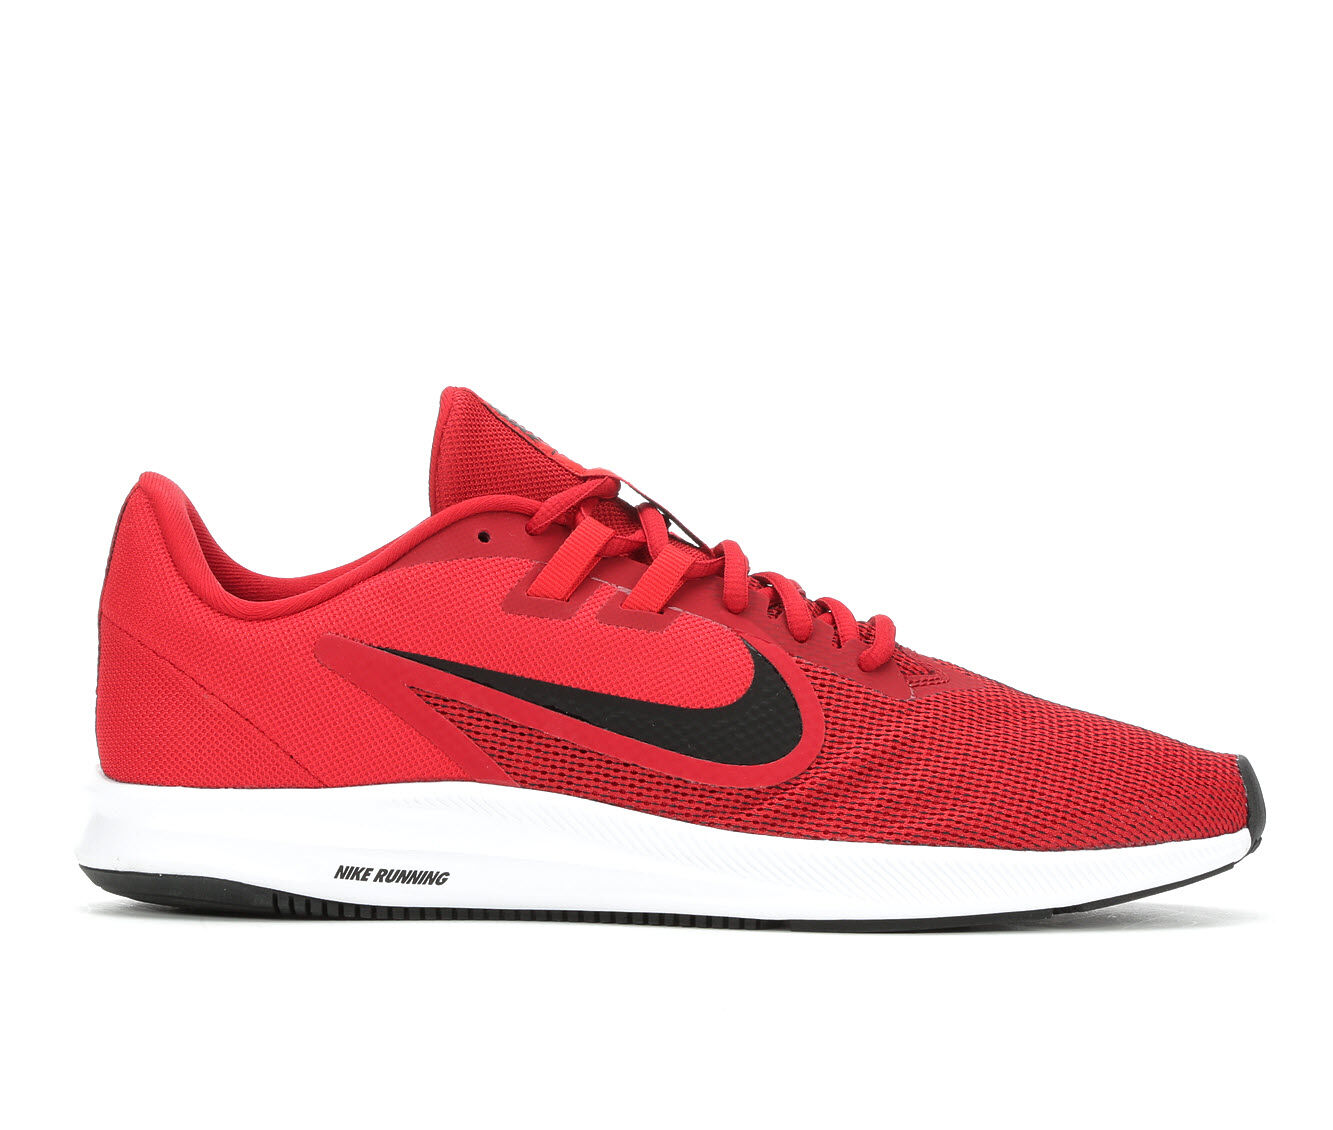 Men's Nike Downshifter 9 Running Shoes Red/Wht/Blk 600